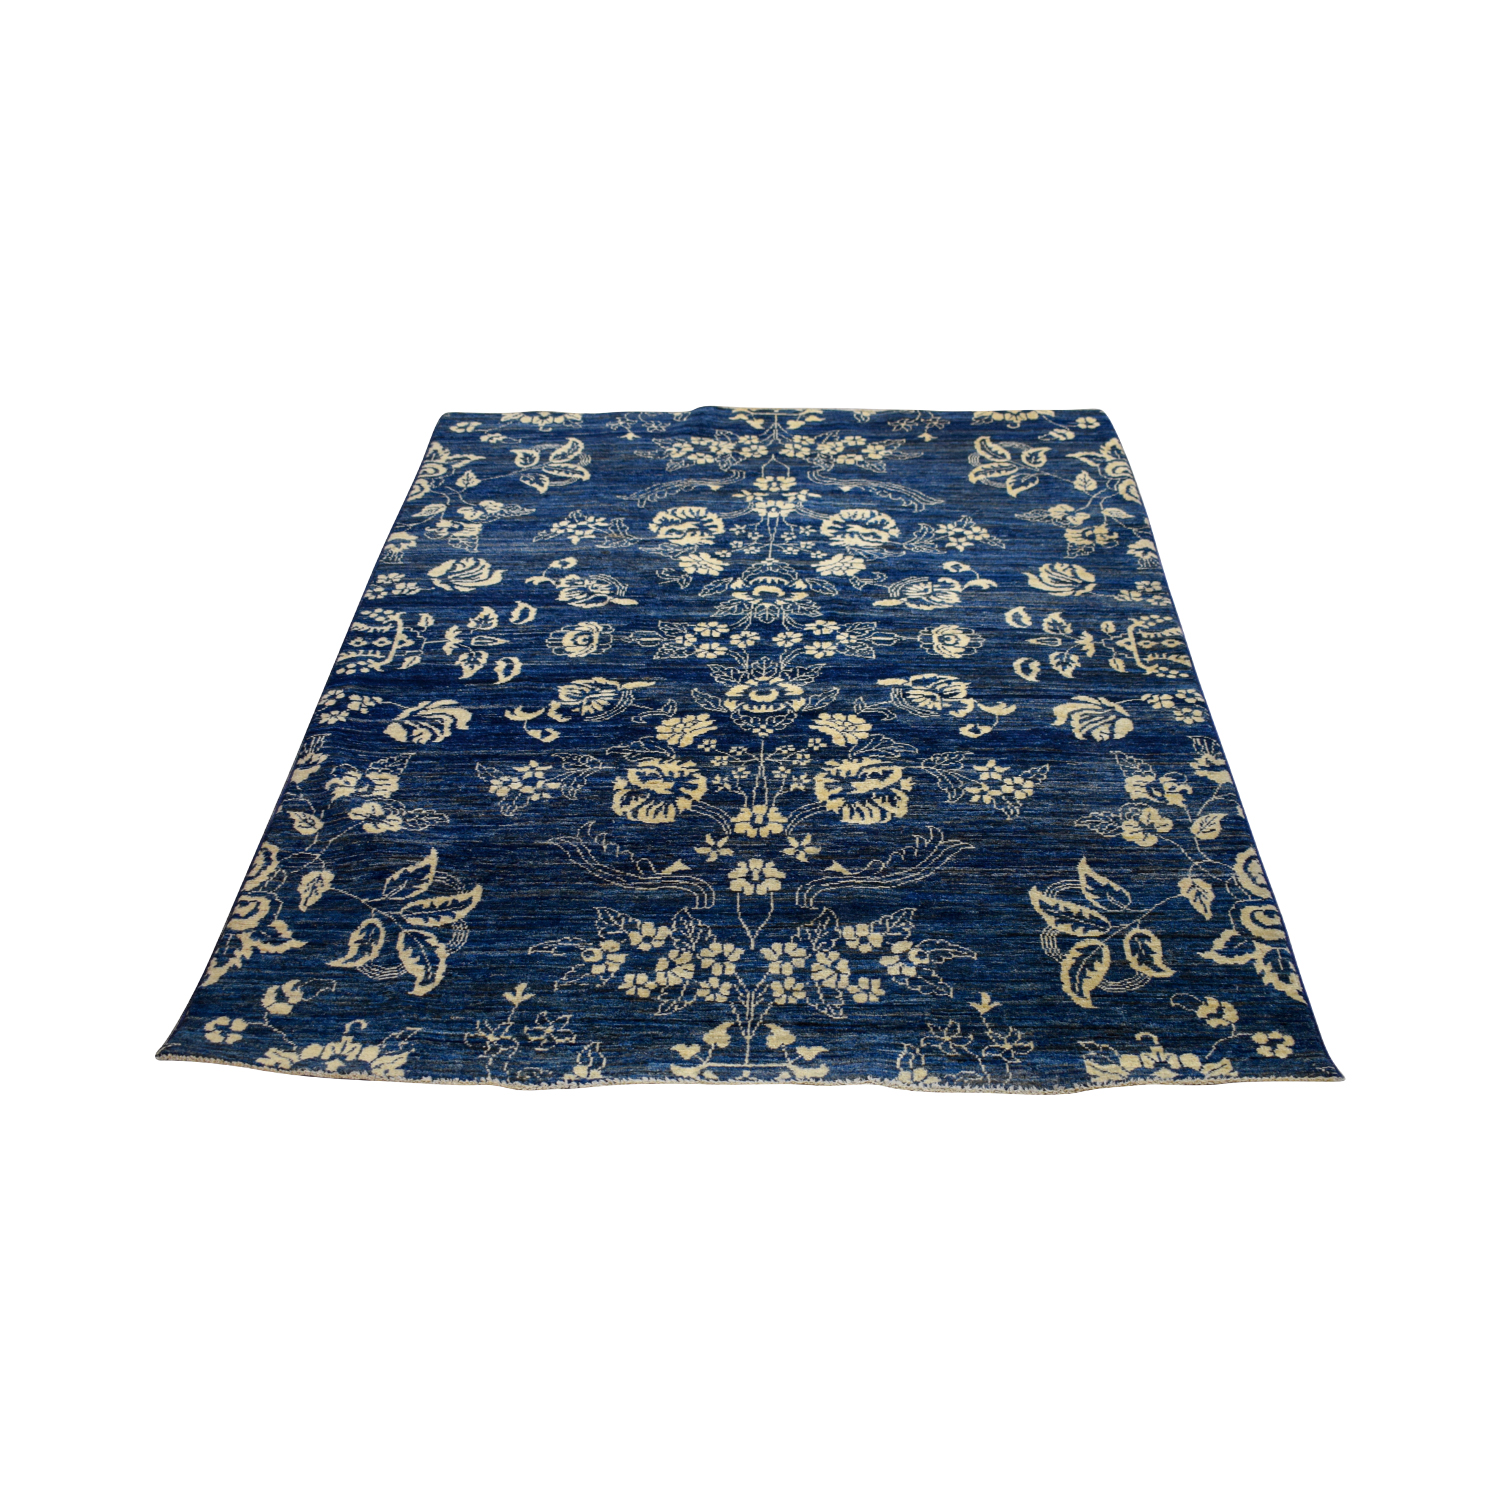 Peshawar Ziegler Peshawar Ziegler Oriental Blue Black and White Floral Rug on sale